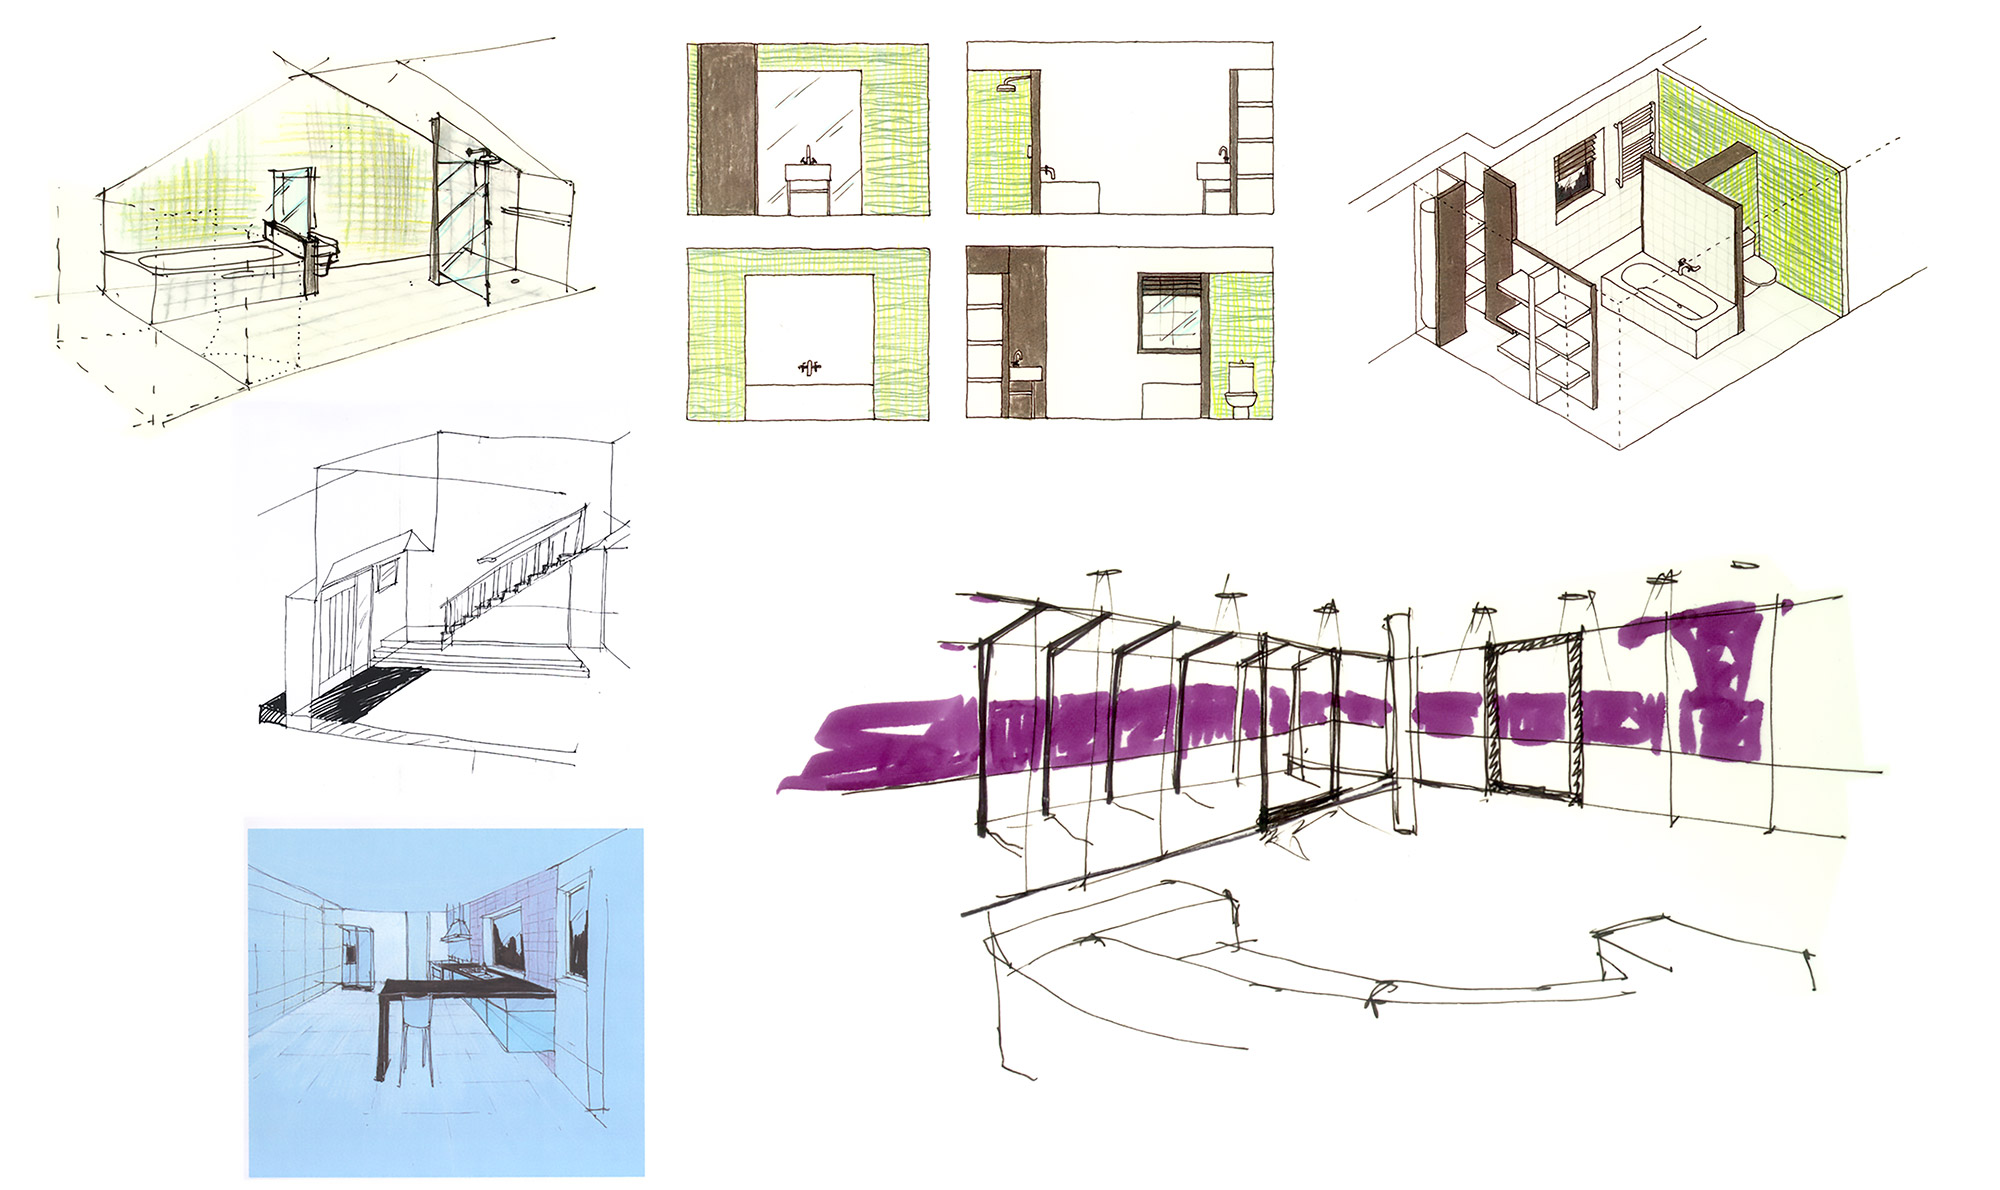 Oxshot House interior design concept drawings